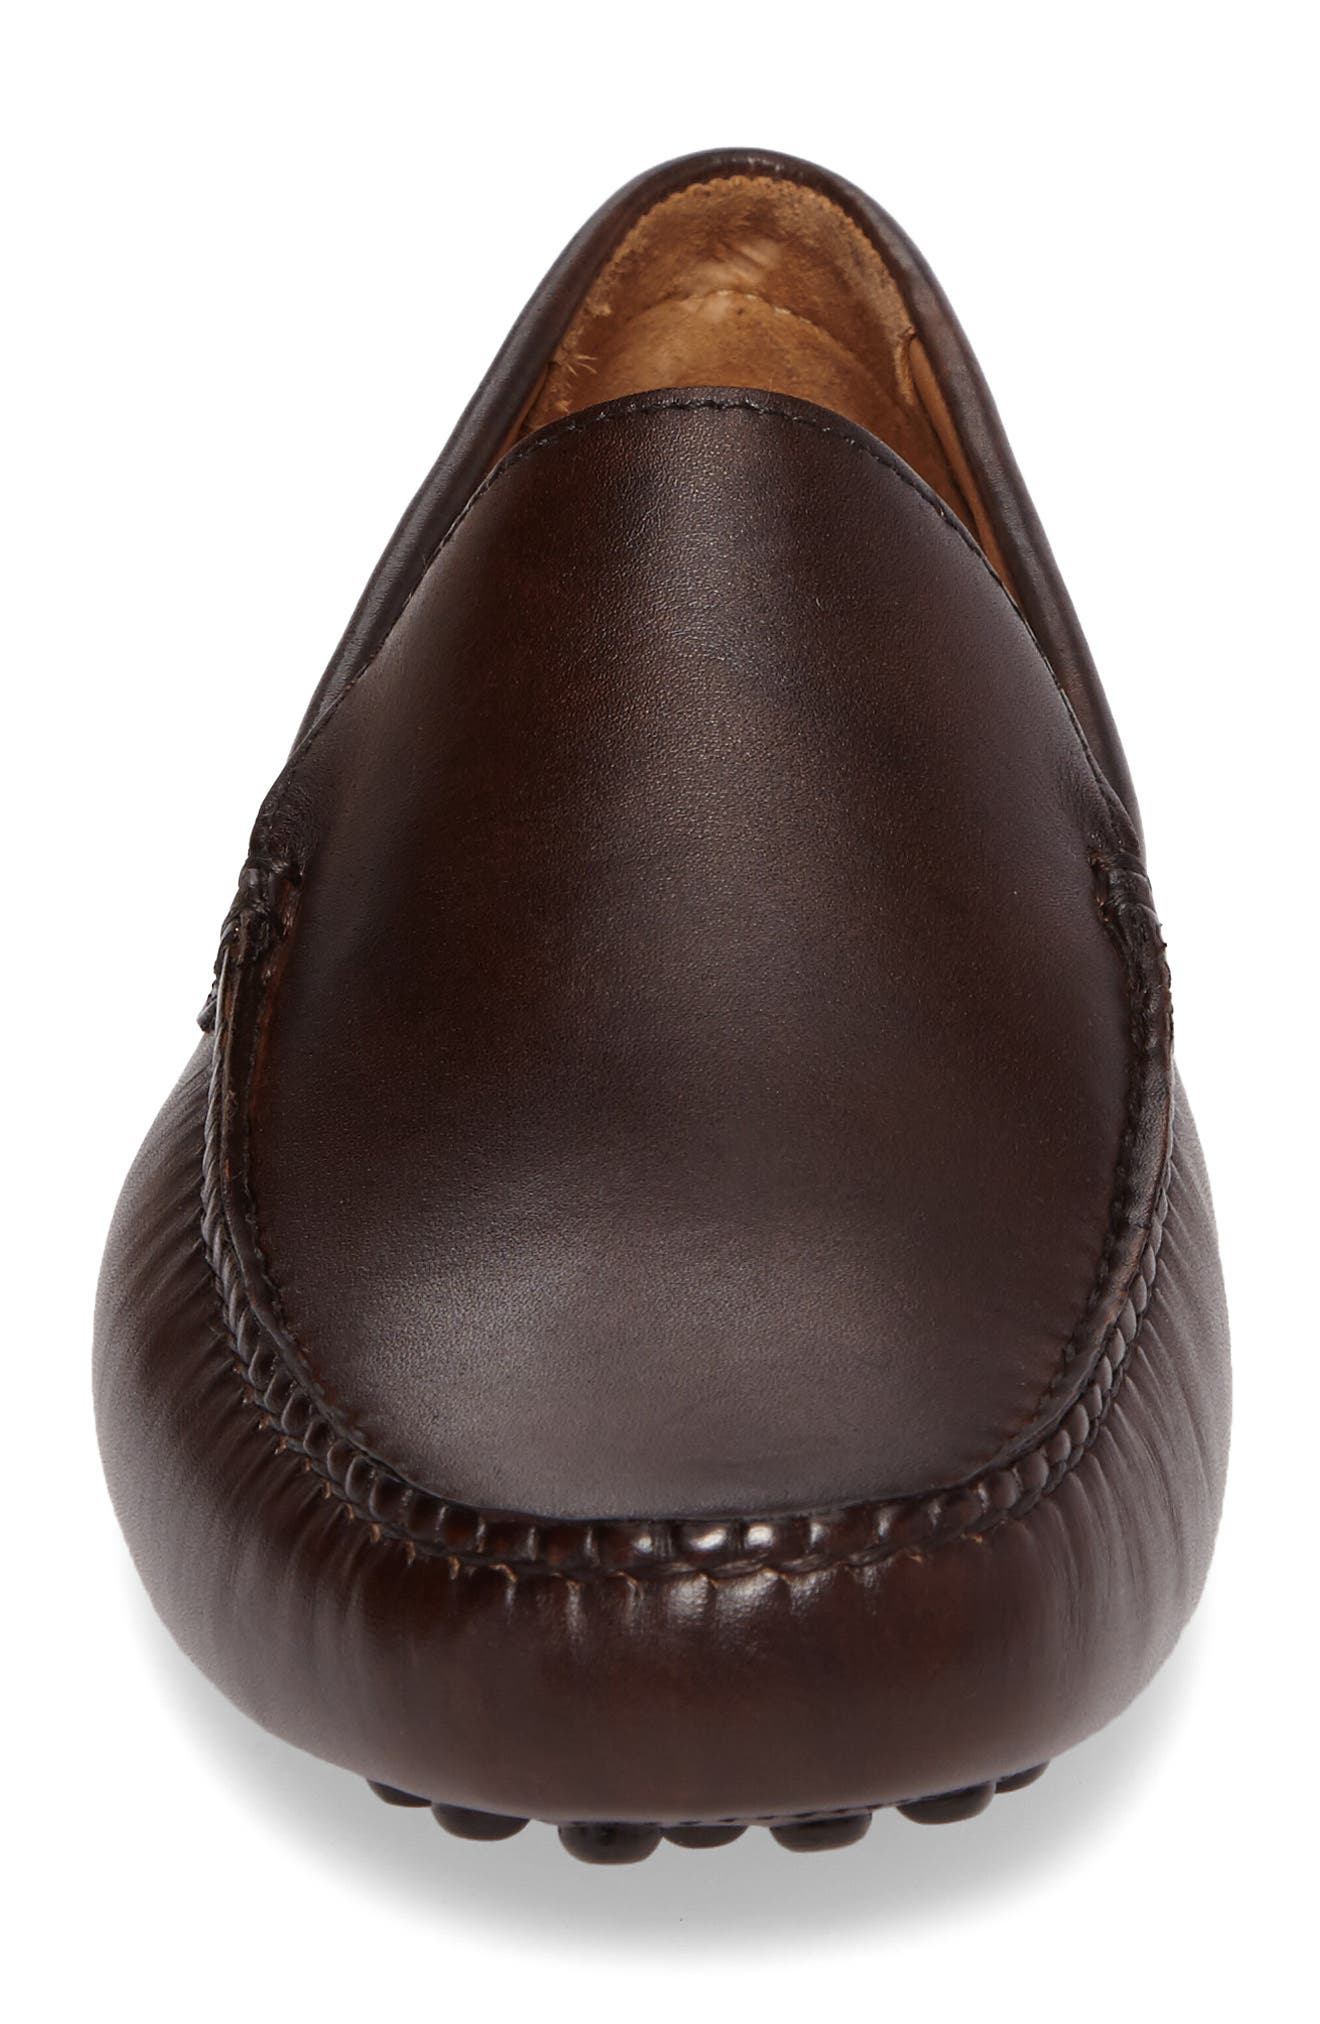 Cane Driving Shoe,                             Alternate thumbnail 4, color,                             Brown Leather